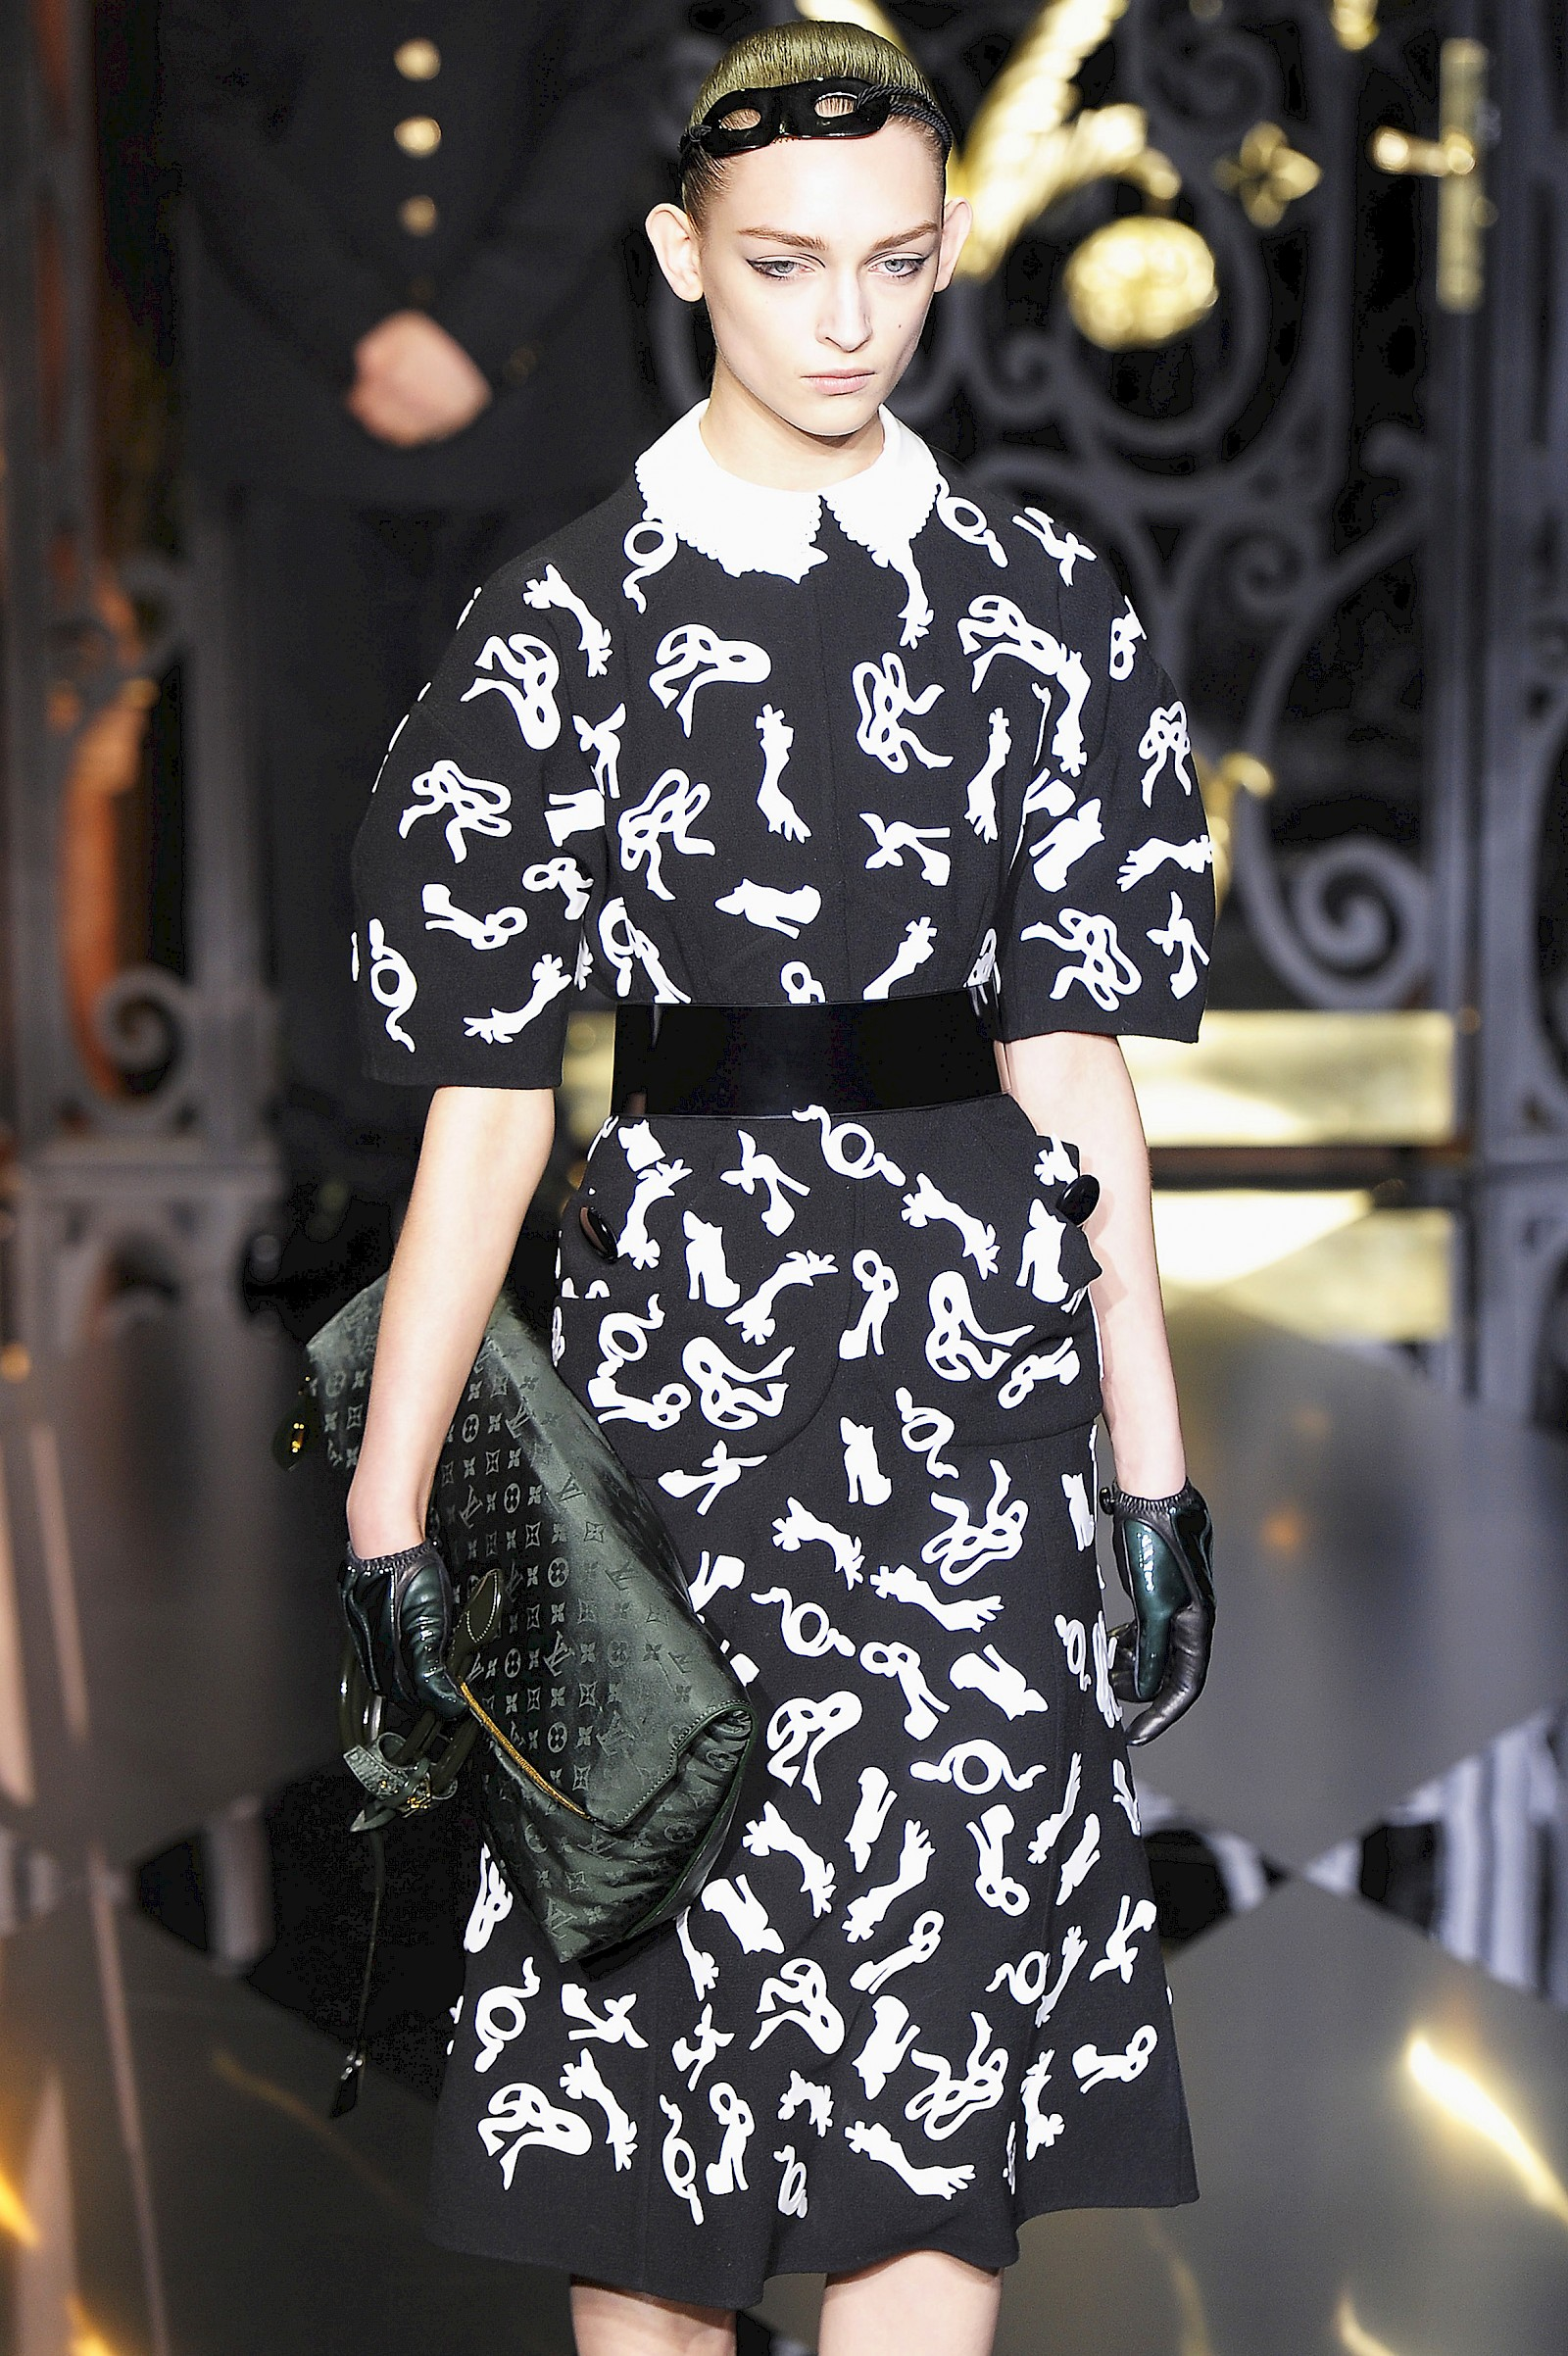 Image - Laser developments for Louis Vuitton Fall 2011 Ready-to-Wear